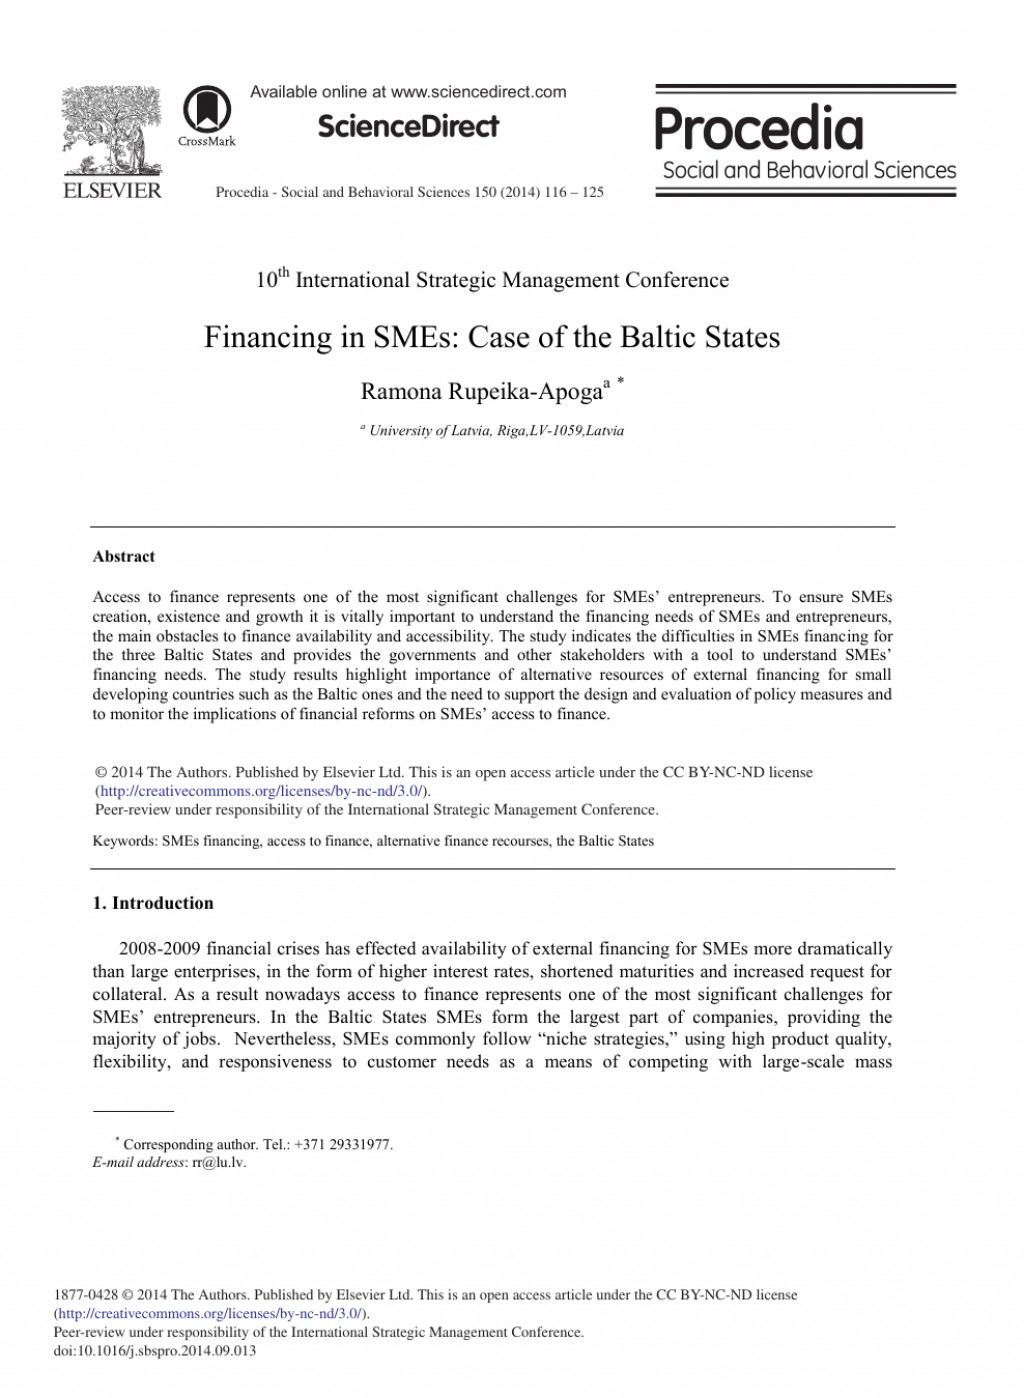 005 Abstract Of Research Paper In Awful Finance Large